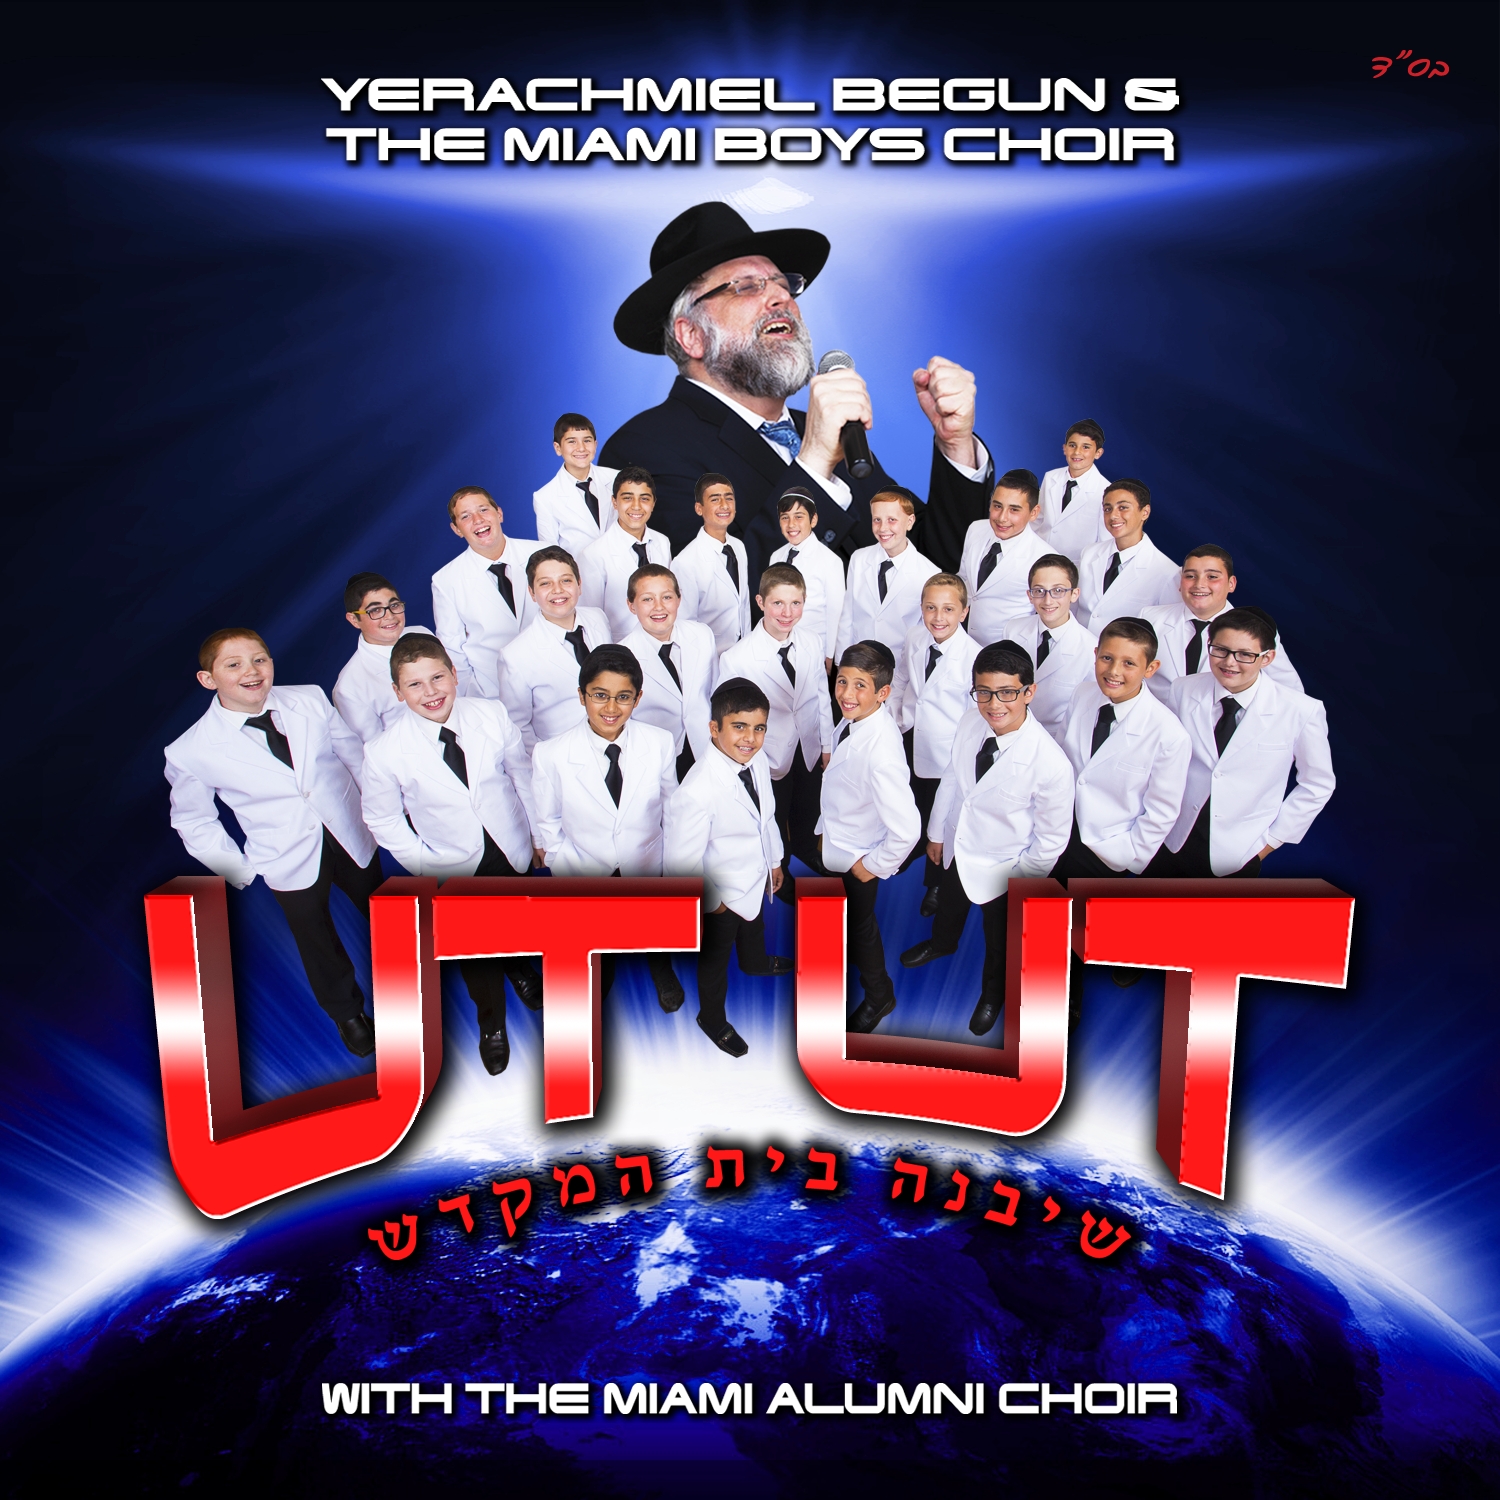 Yerachmiel Begun and The Miami Boys Choir - Ut Ut